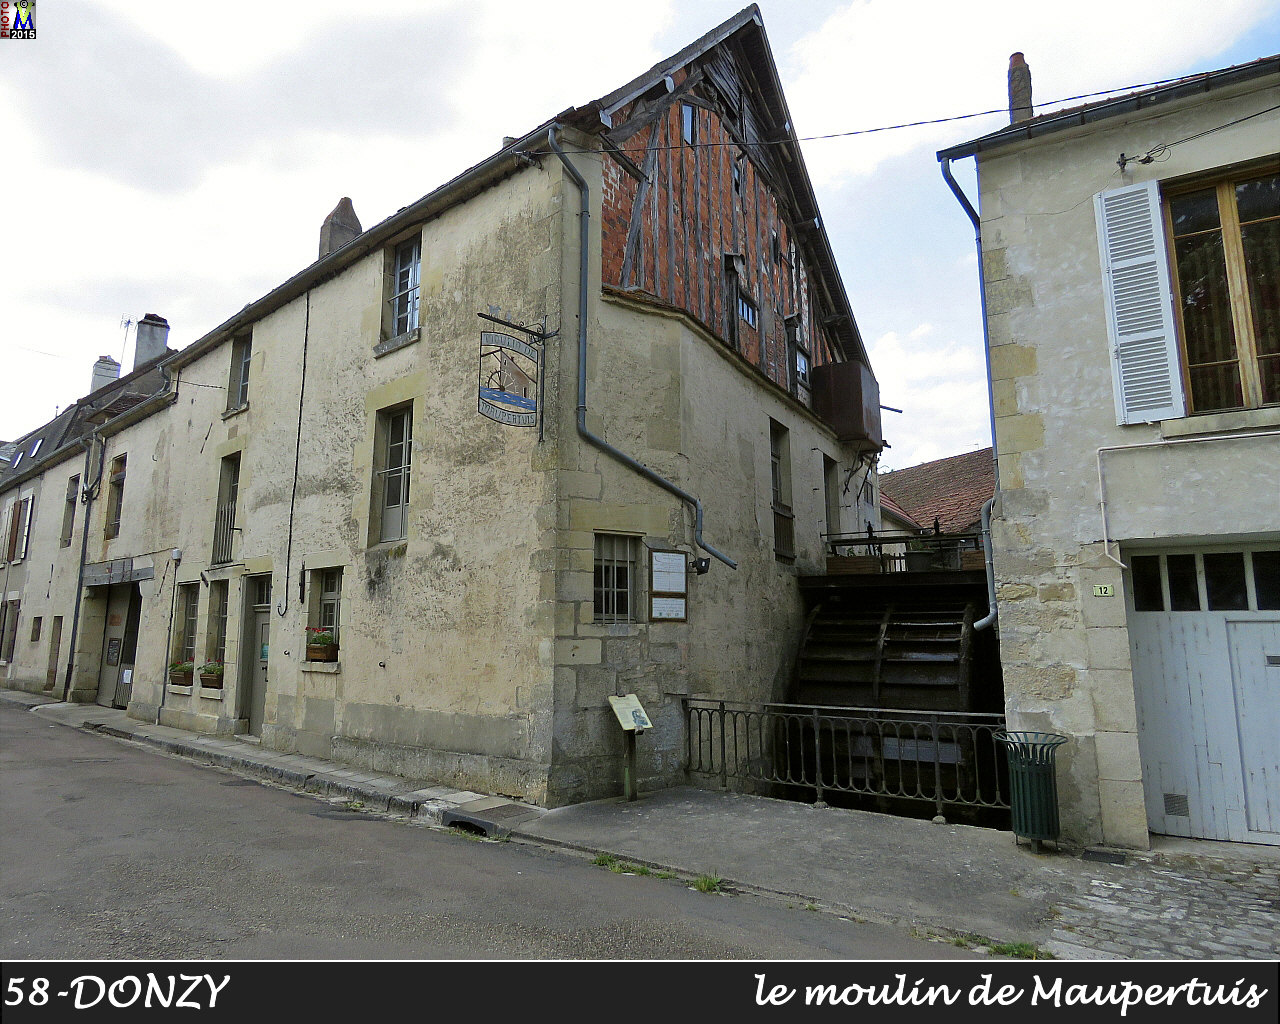 58DONZY_moulin_100.jpg